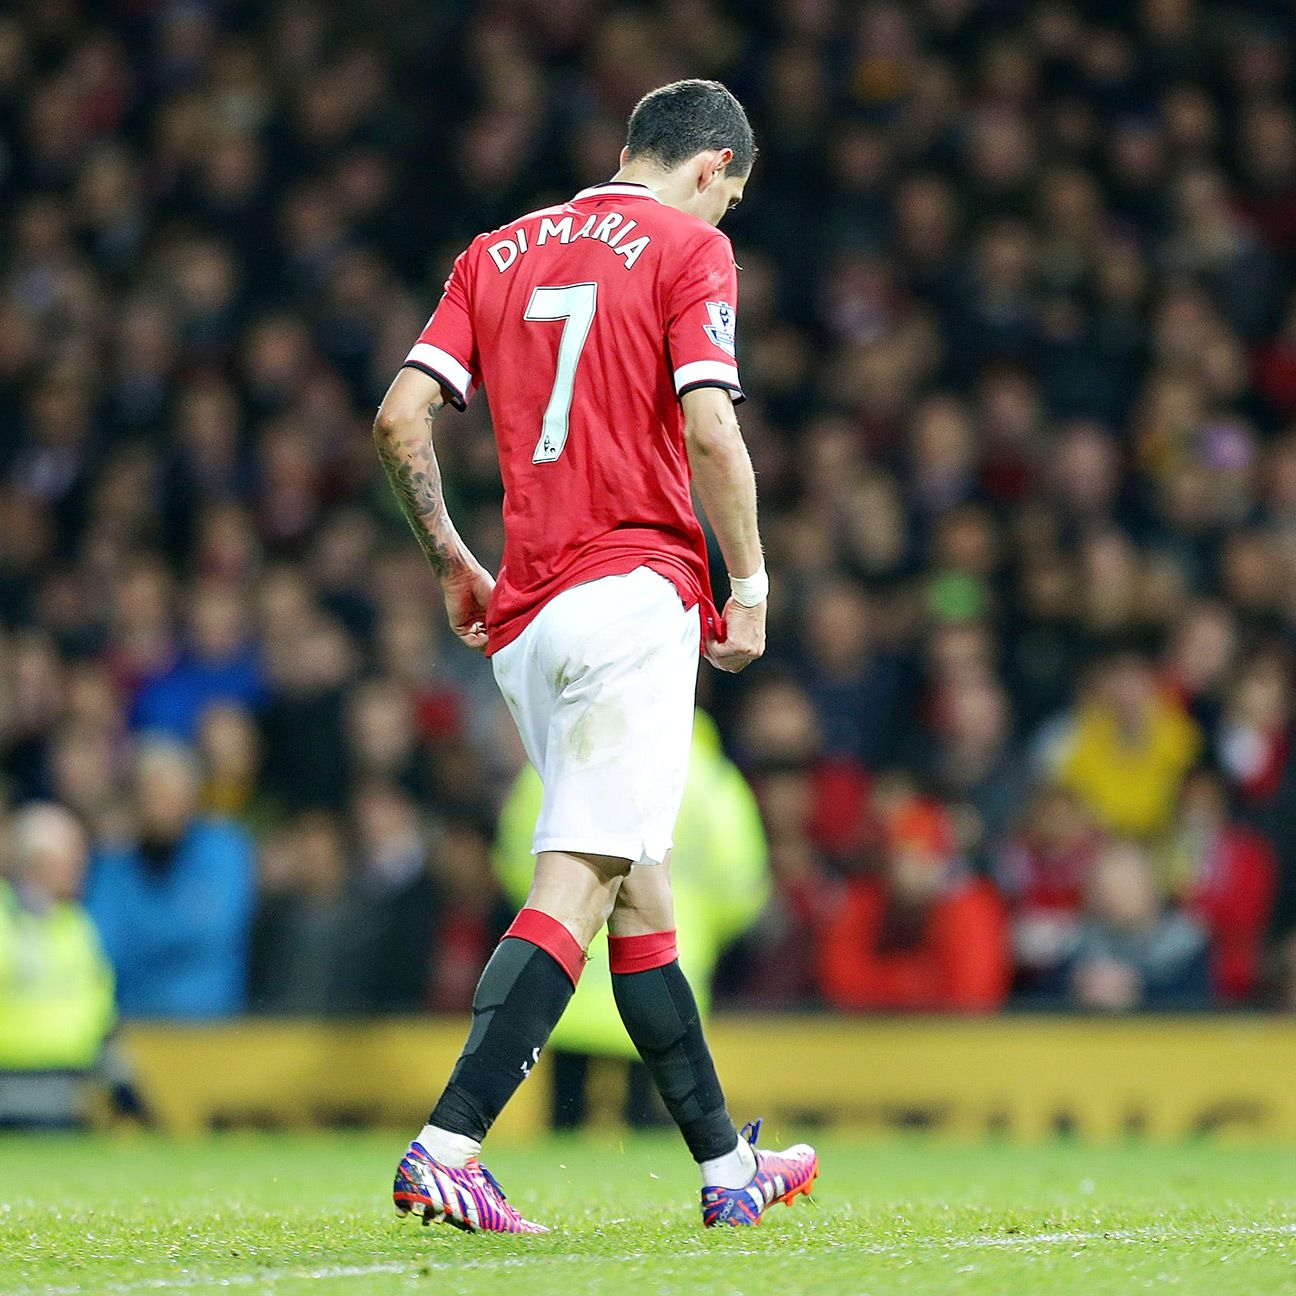 Angel di Maria made just 20 starts last season in the Premier League.